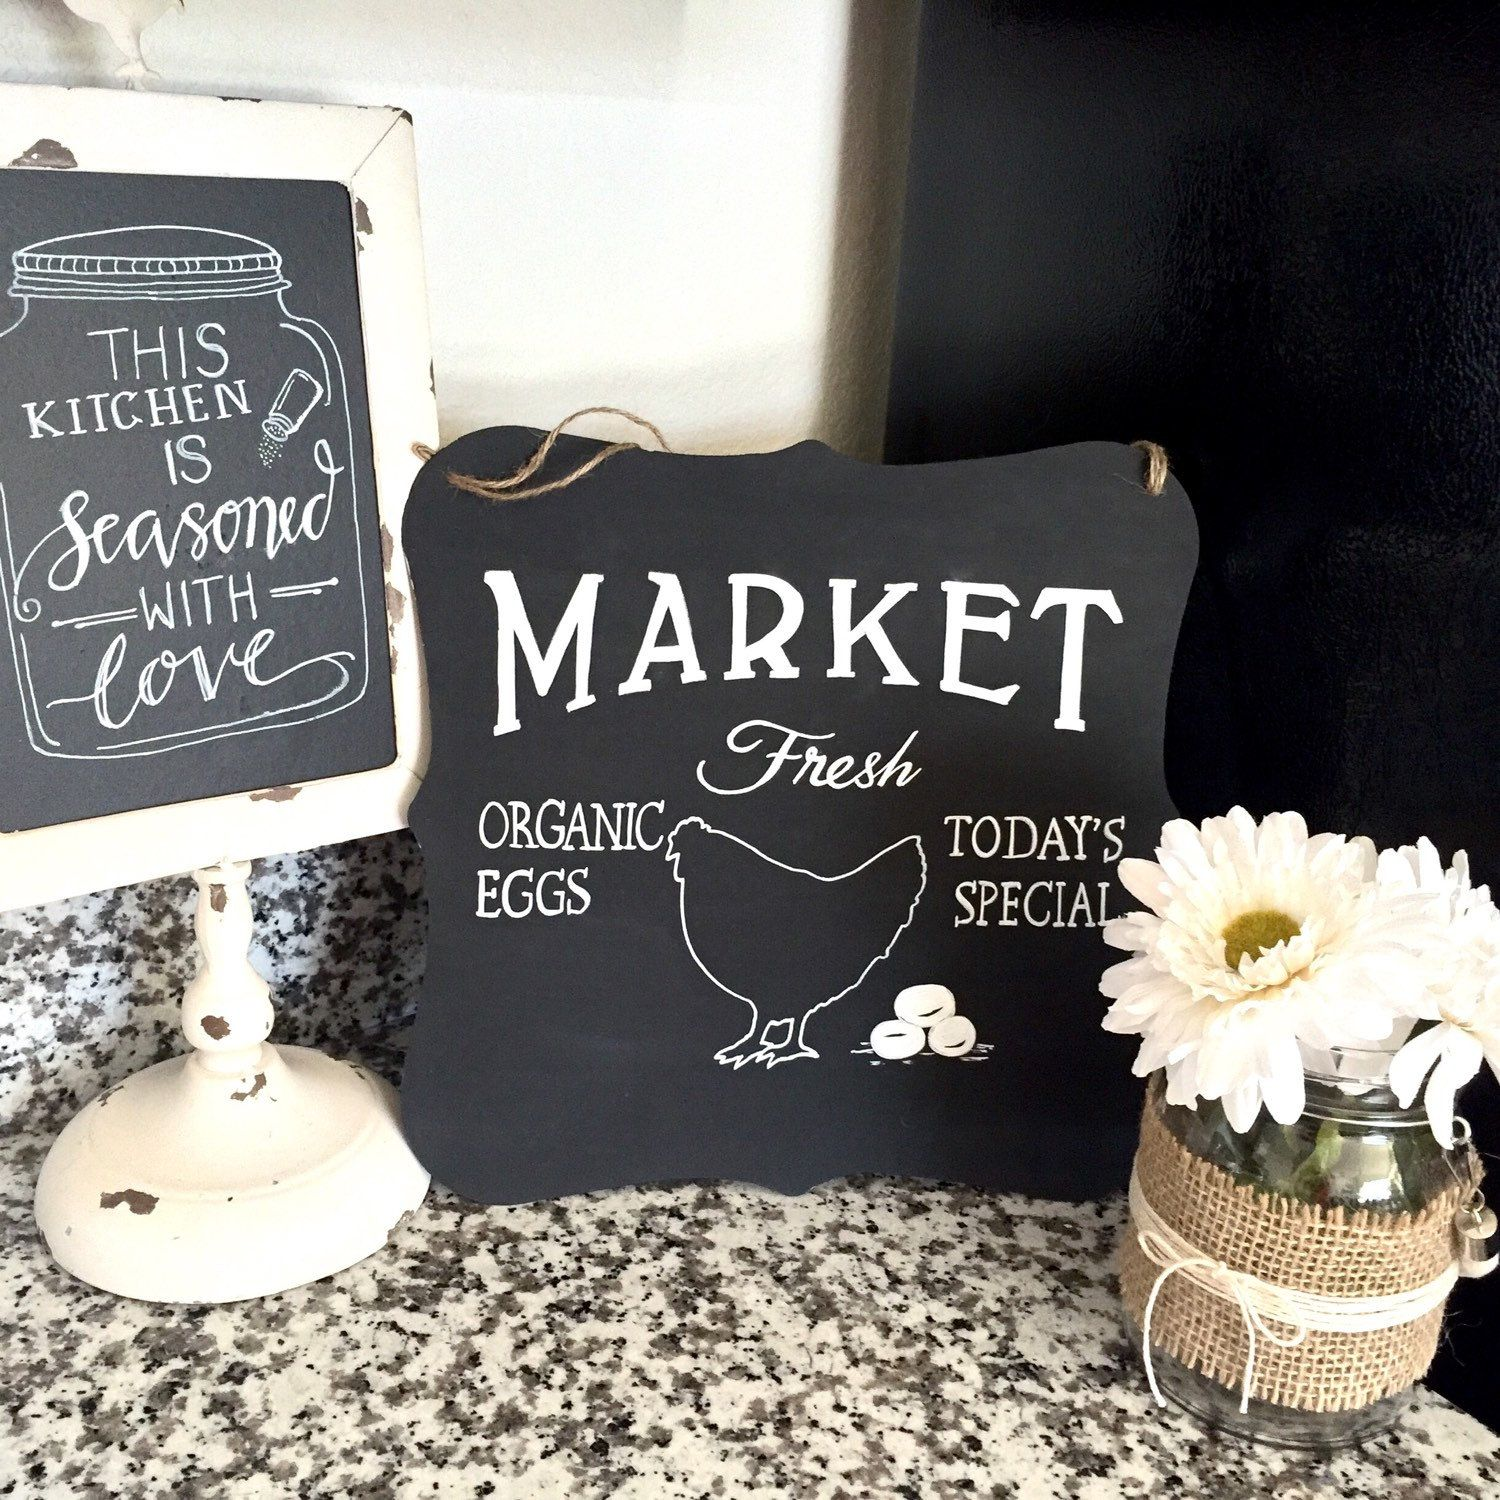 Metal Market Chalkboard Sign has been added to the store metal